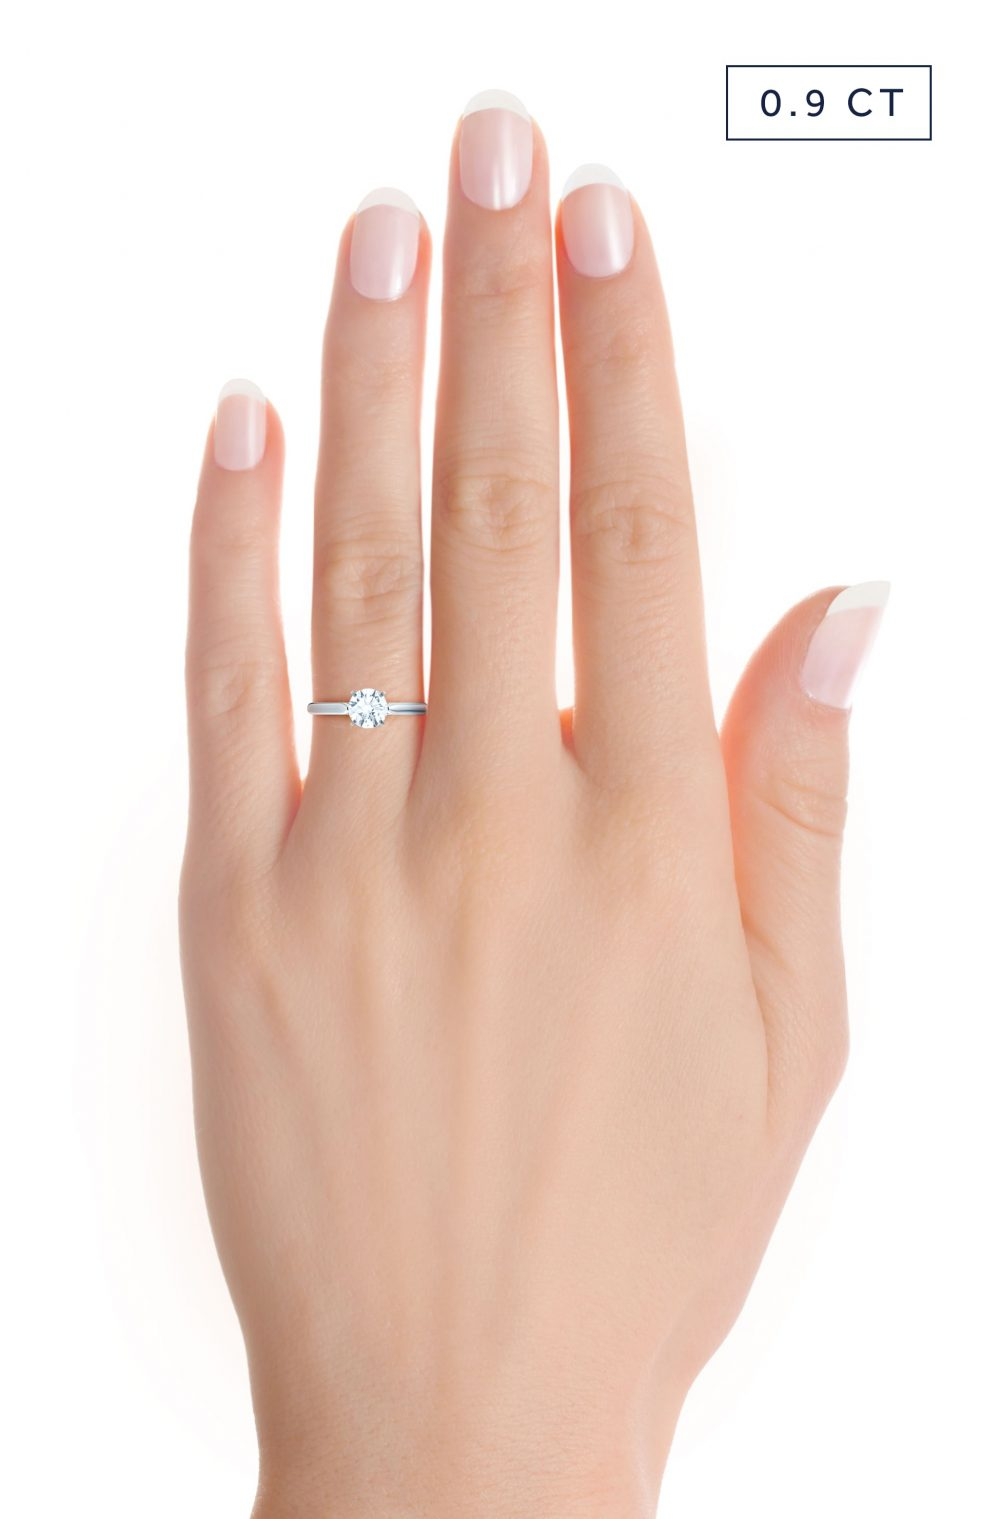 0.9ct-diamond-on-hand-1-1